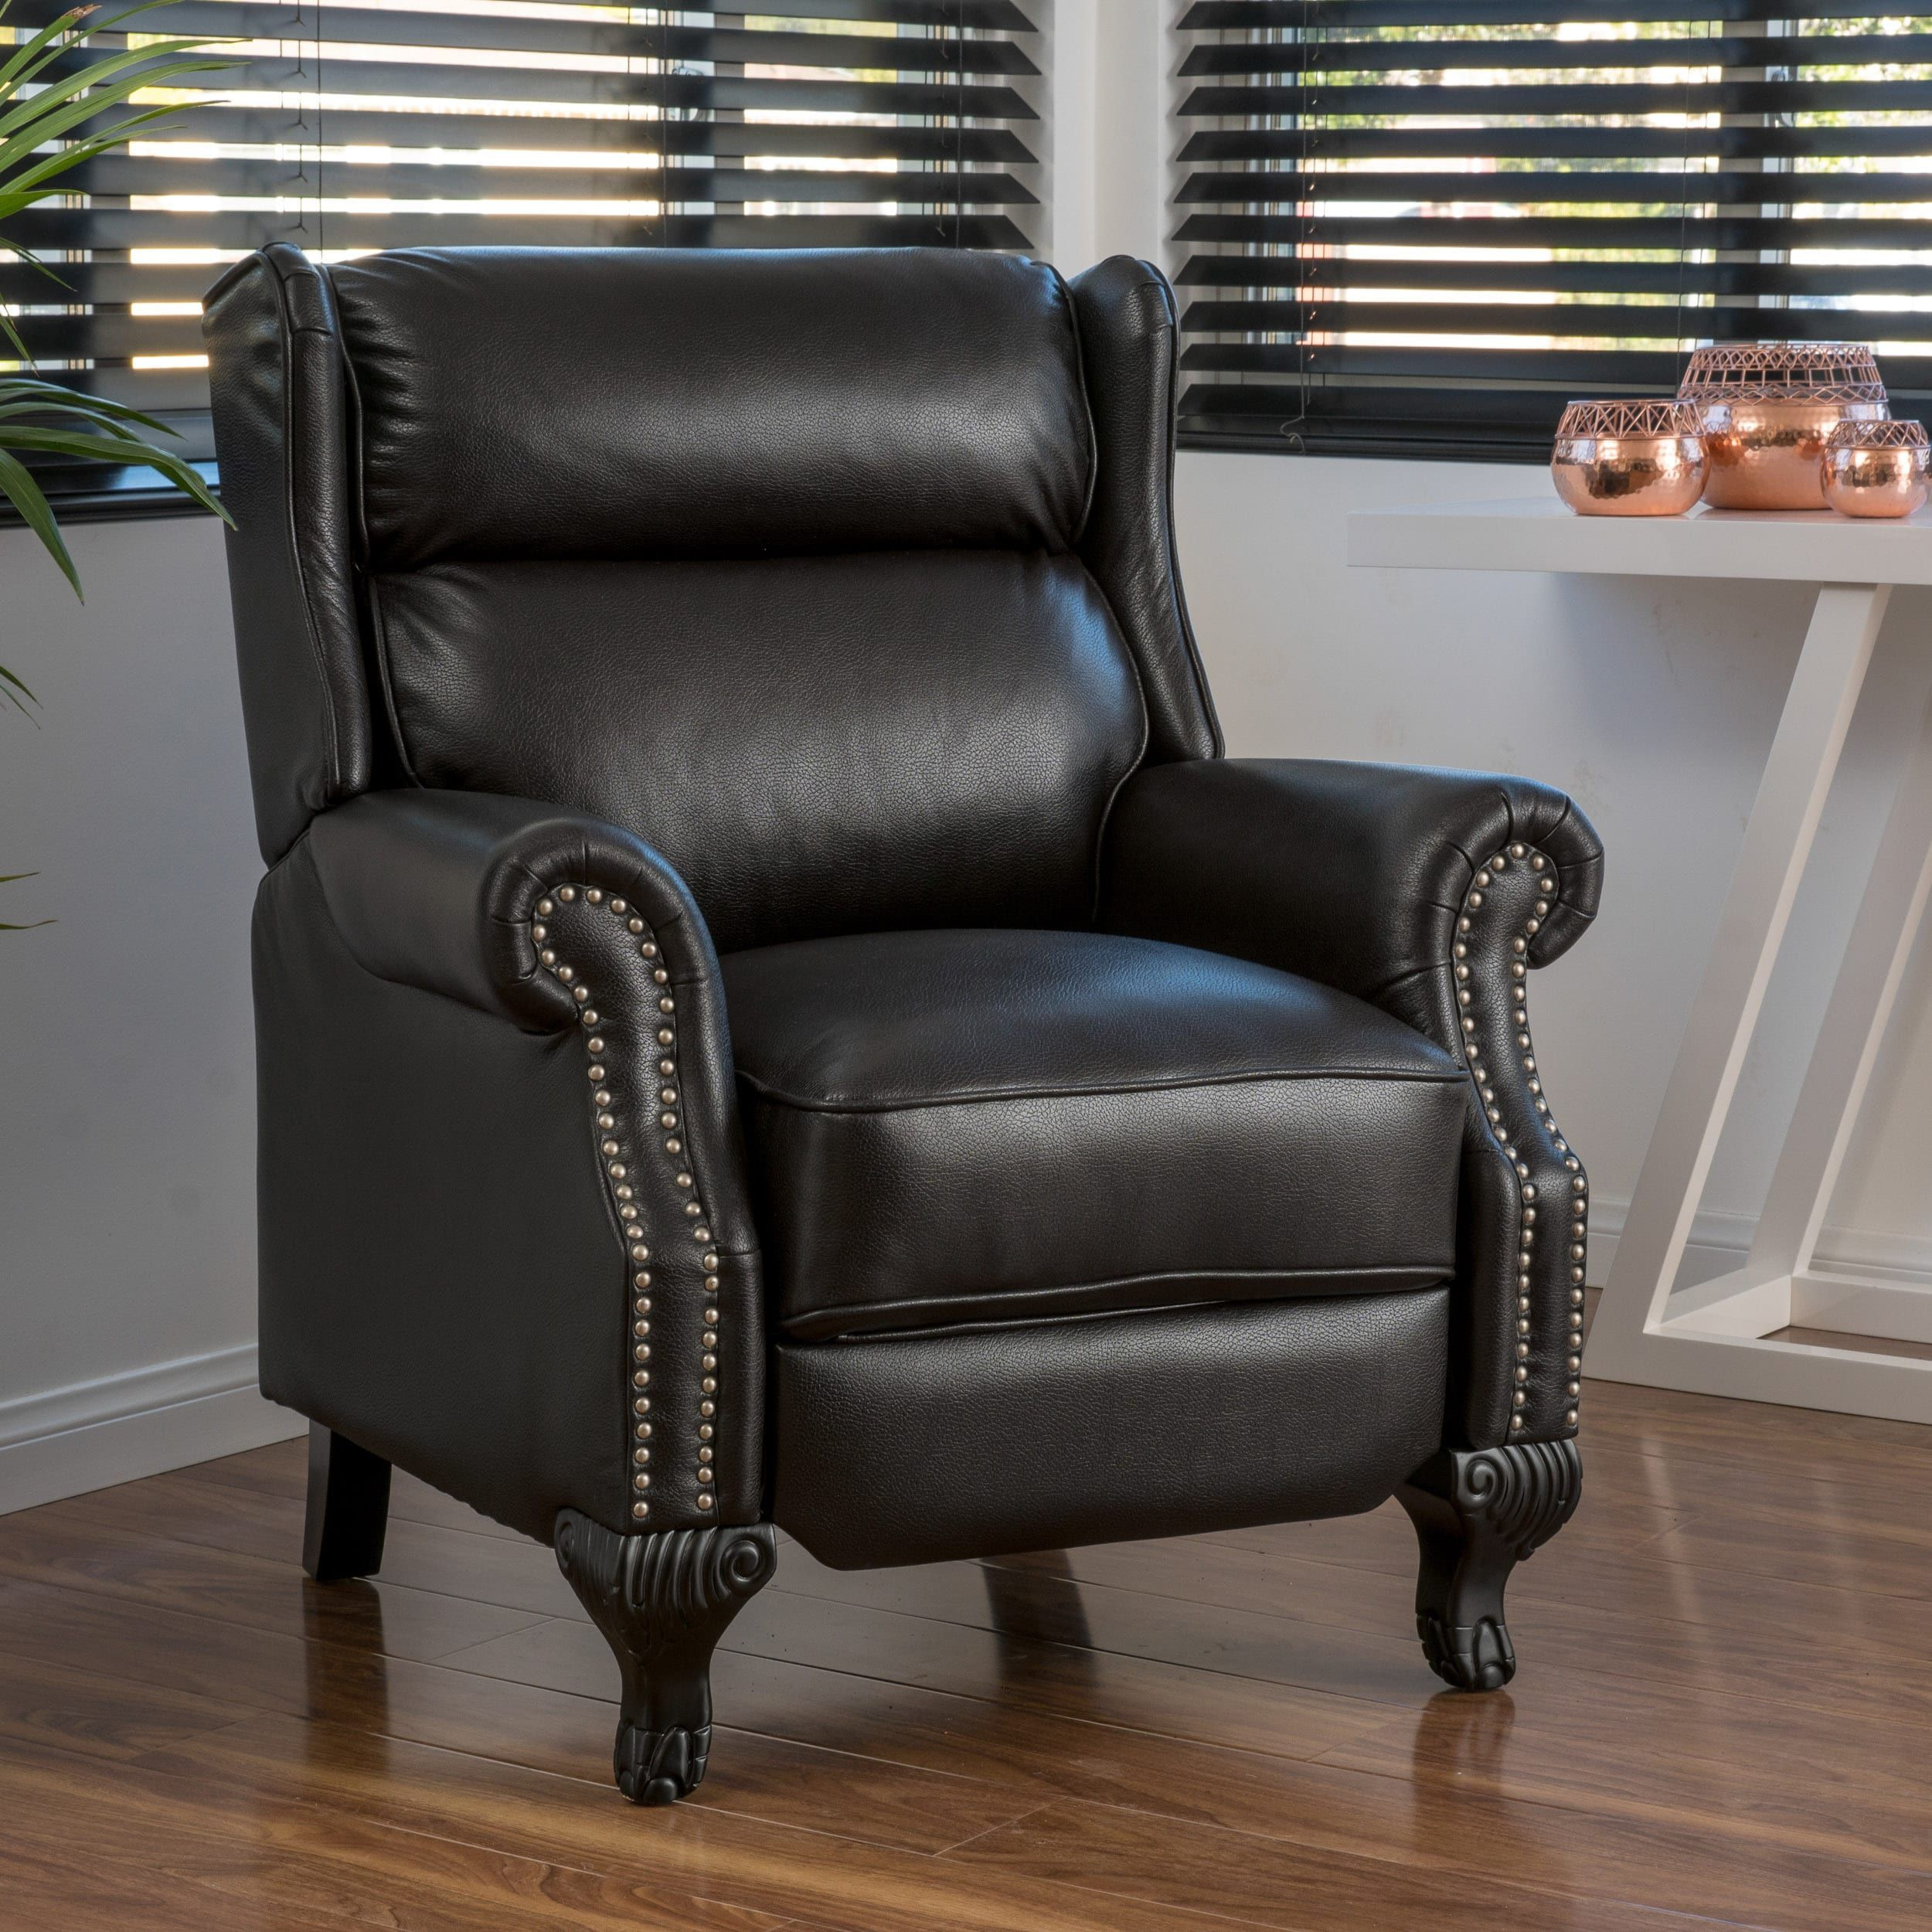 hardwood flooring dimension standards of tauris pu leather recliner club chair by christopher knight home pertaining to tauris pu leather recliner club chair by christopher knight home black size standard